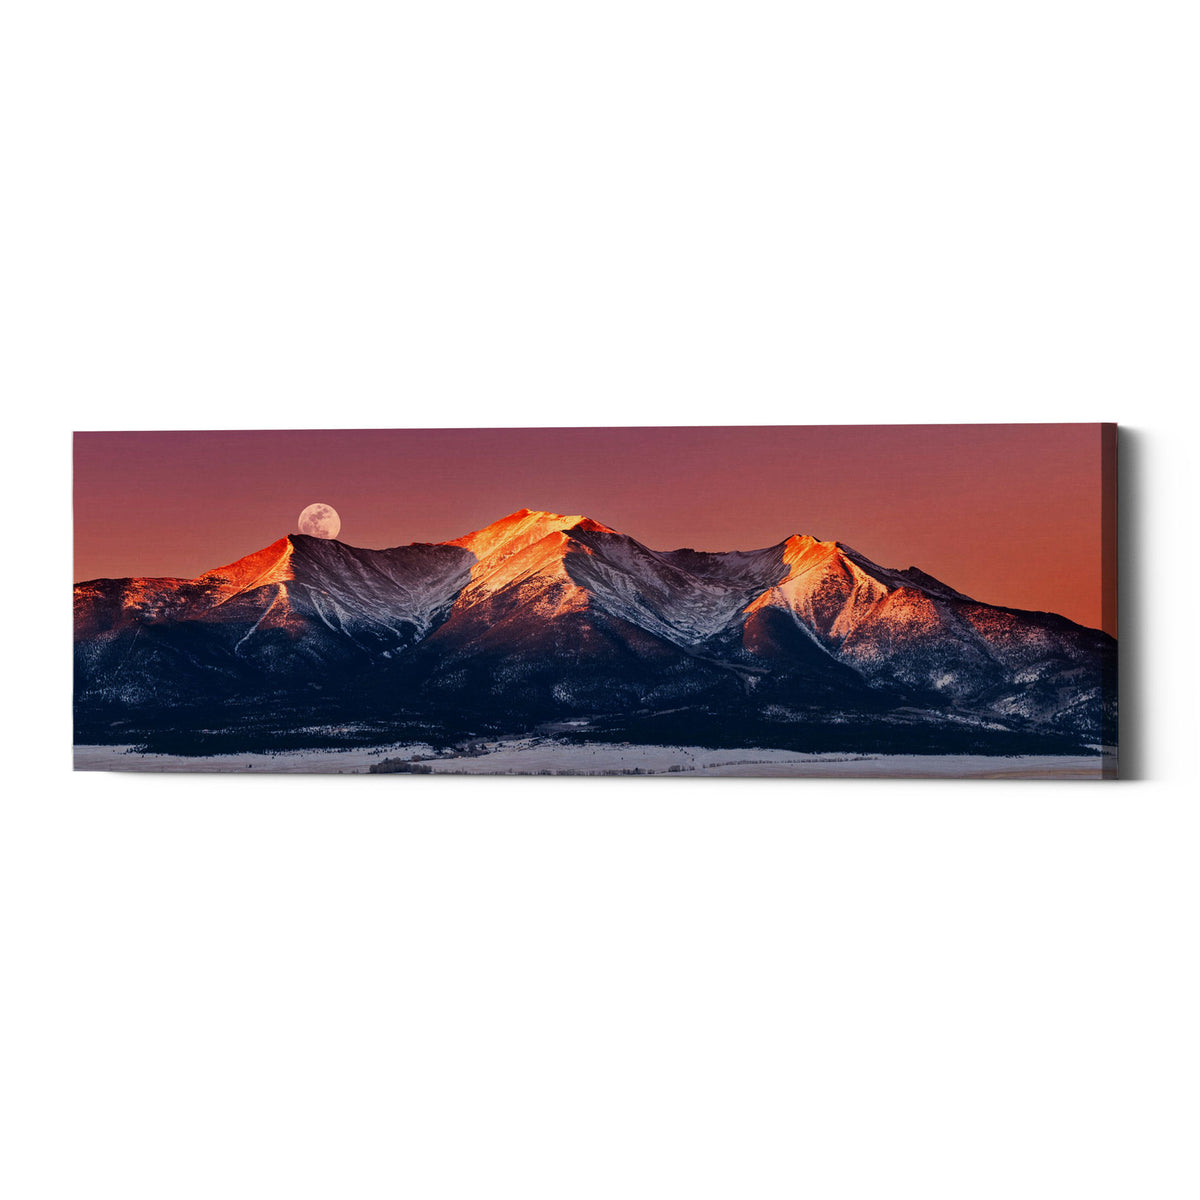 "Epic Graffiti ""Mount Princeton Moonset"" by Darren White, Giclee Canvas Wall Art"